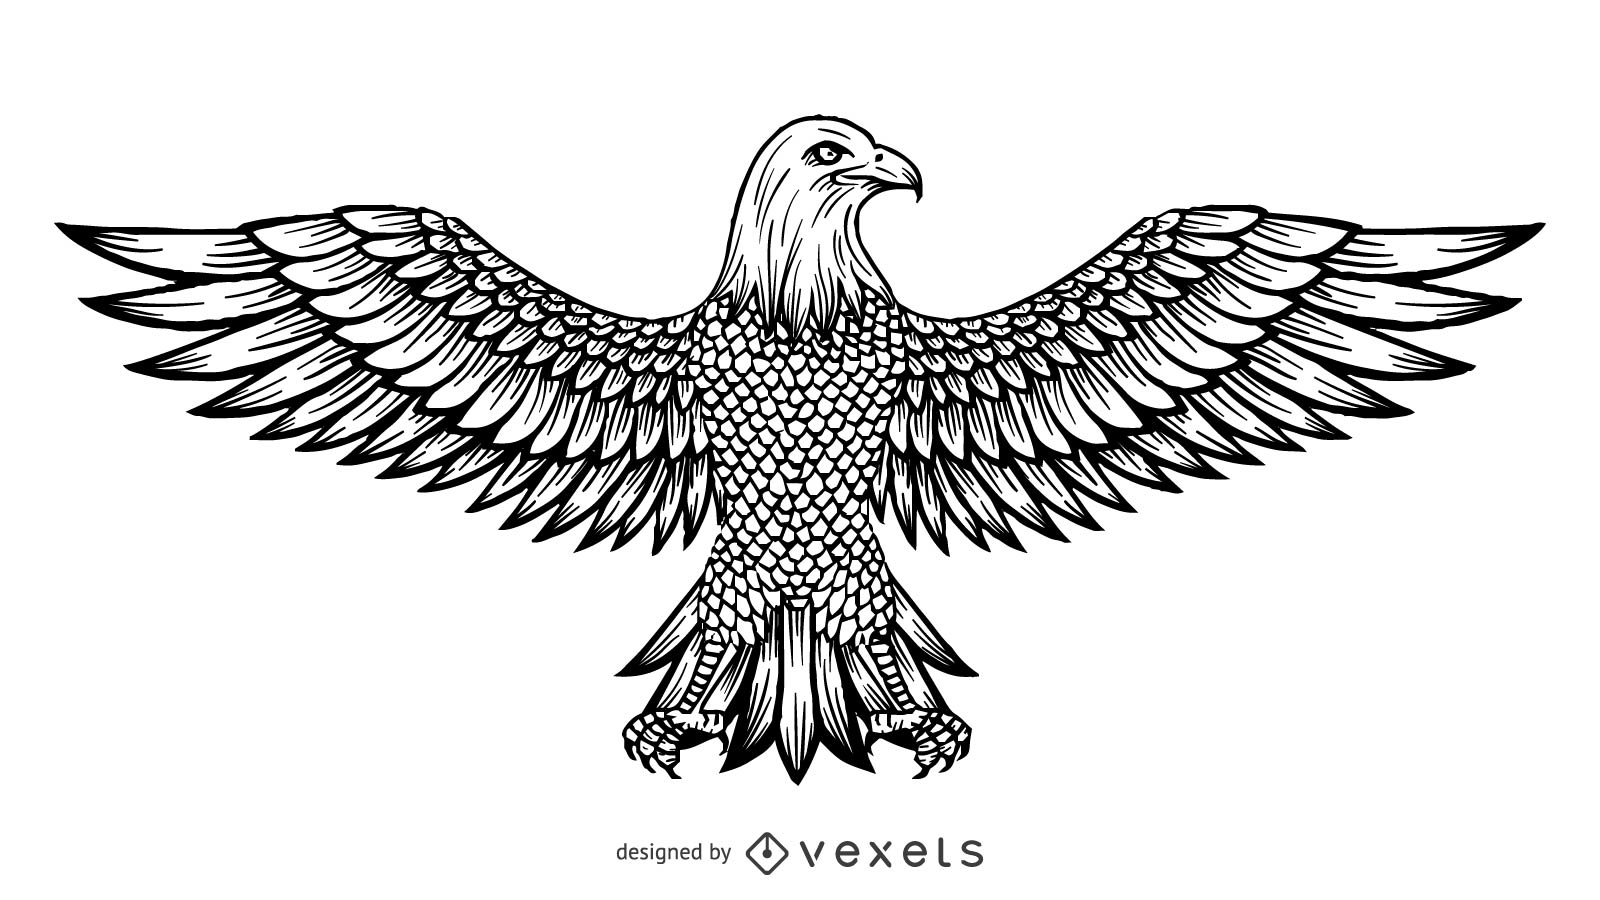 1600x900 Vector Line Drawing Of The Eagle